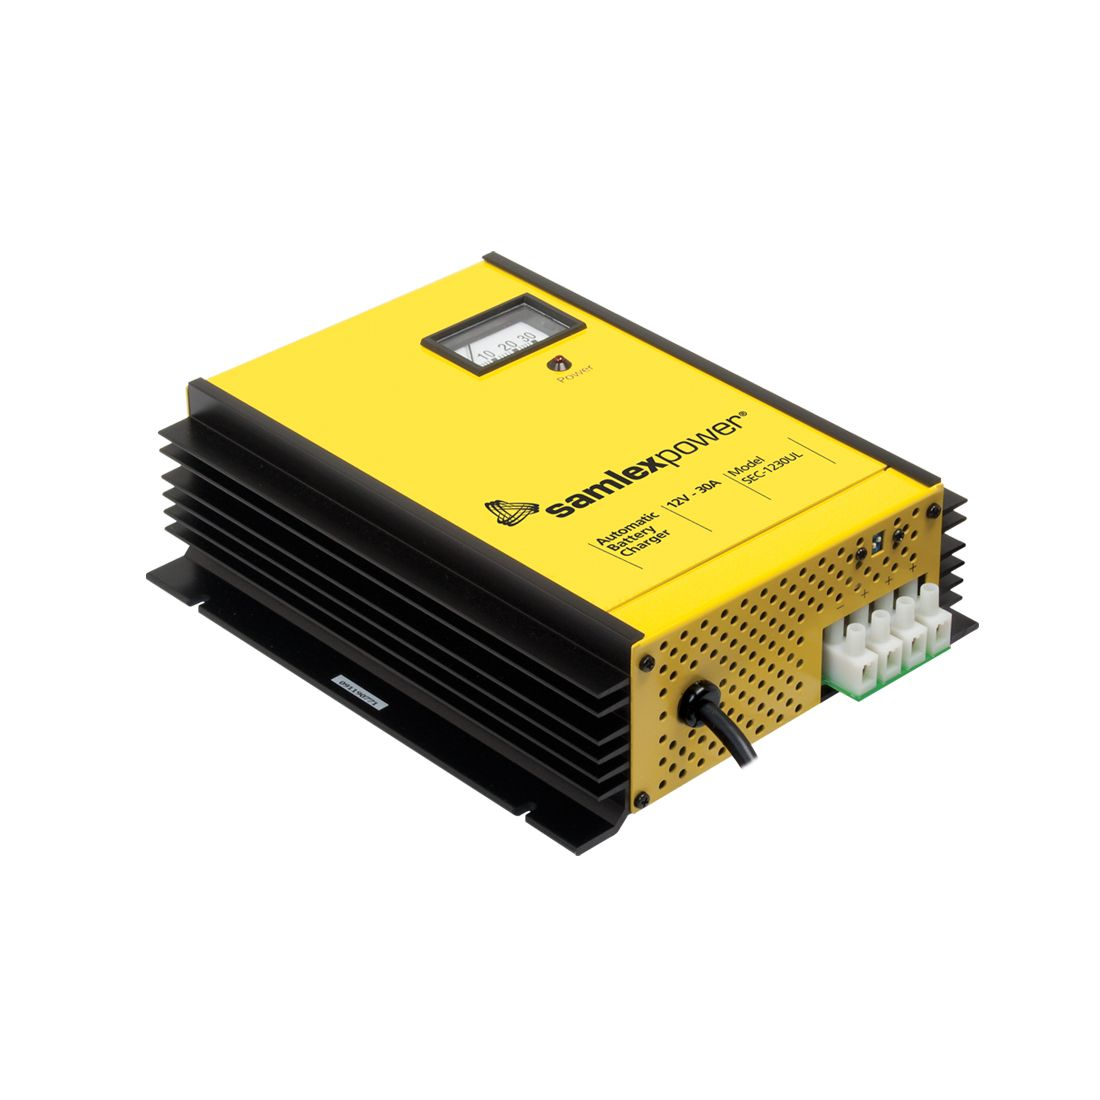 SEC1230UL- Samlex 30 Amp 12 VDC Lead-Acid Battery Charger or Power Supply